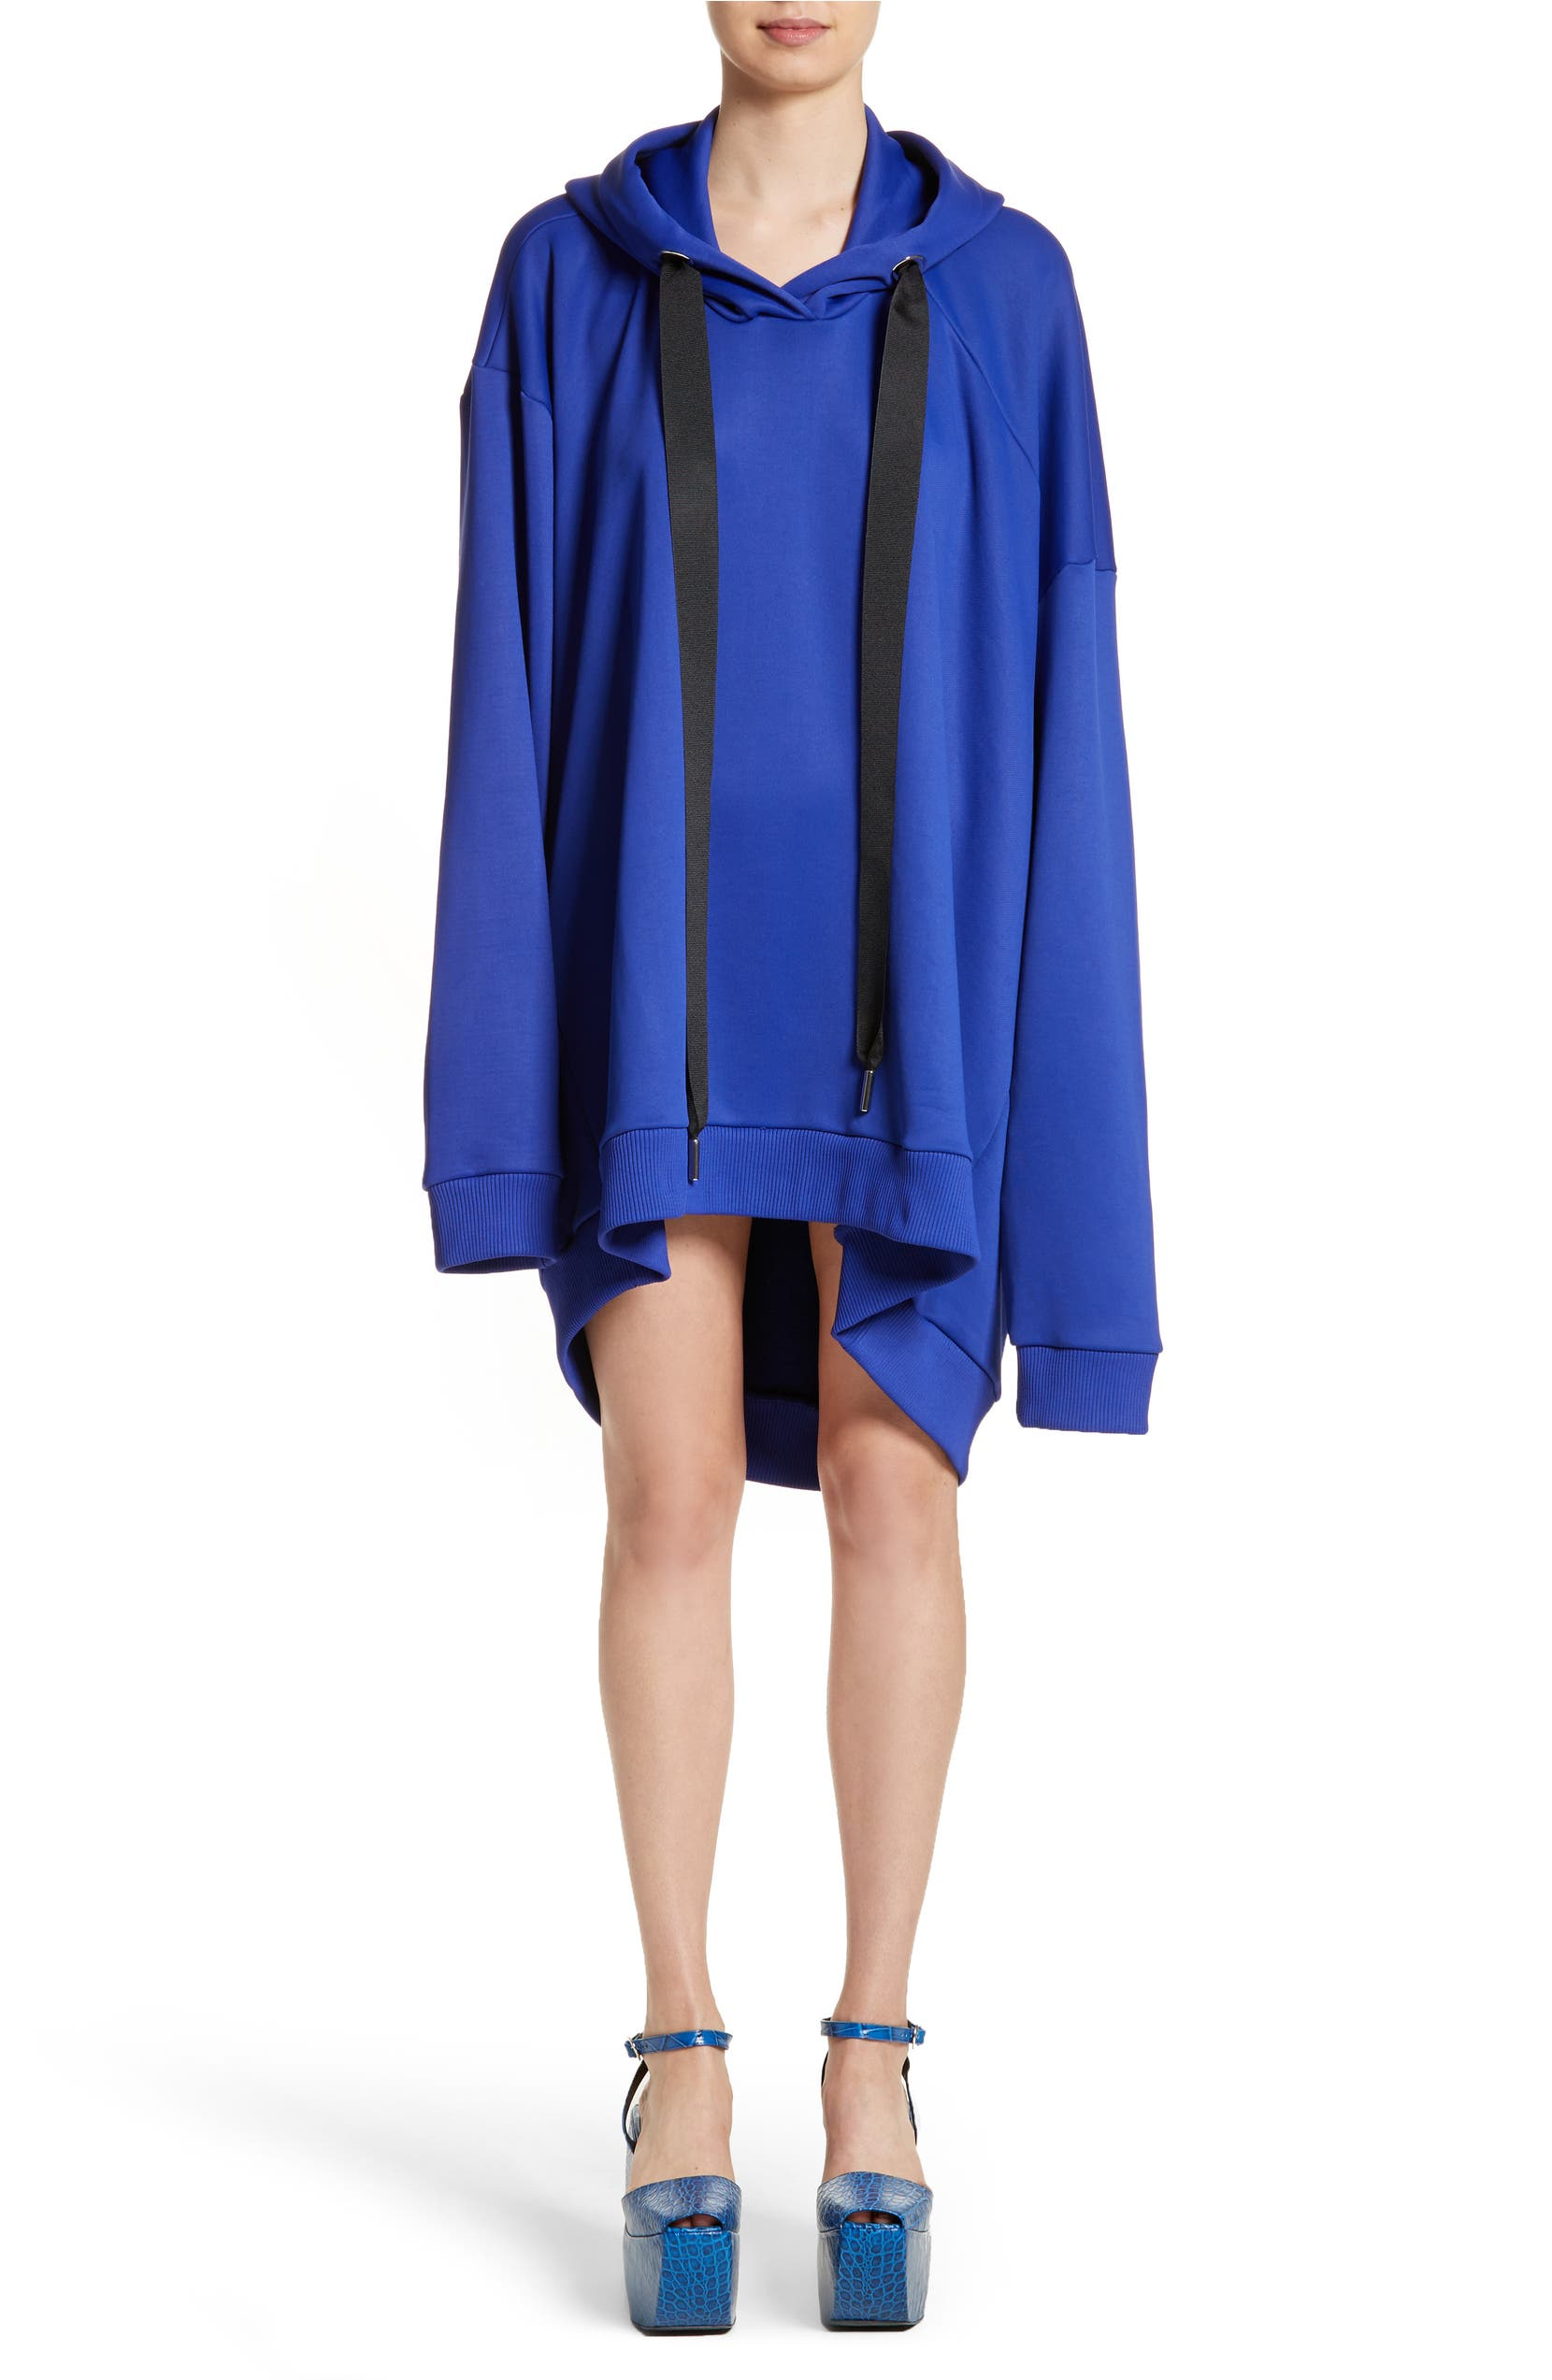 Oversize HoodieNordstrom Drawstring Marques'almeida Marques'almeida Oversize Drawstring Drawstring HoodieNordstrom Oversize Marques'almeida 5Aj4L3R